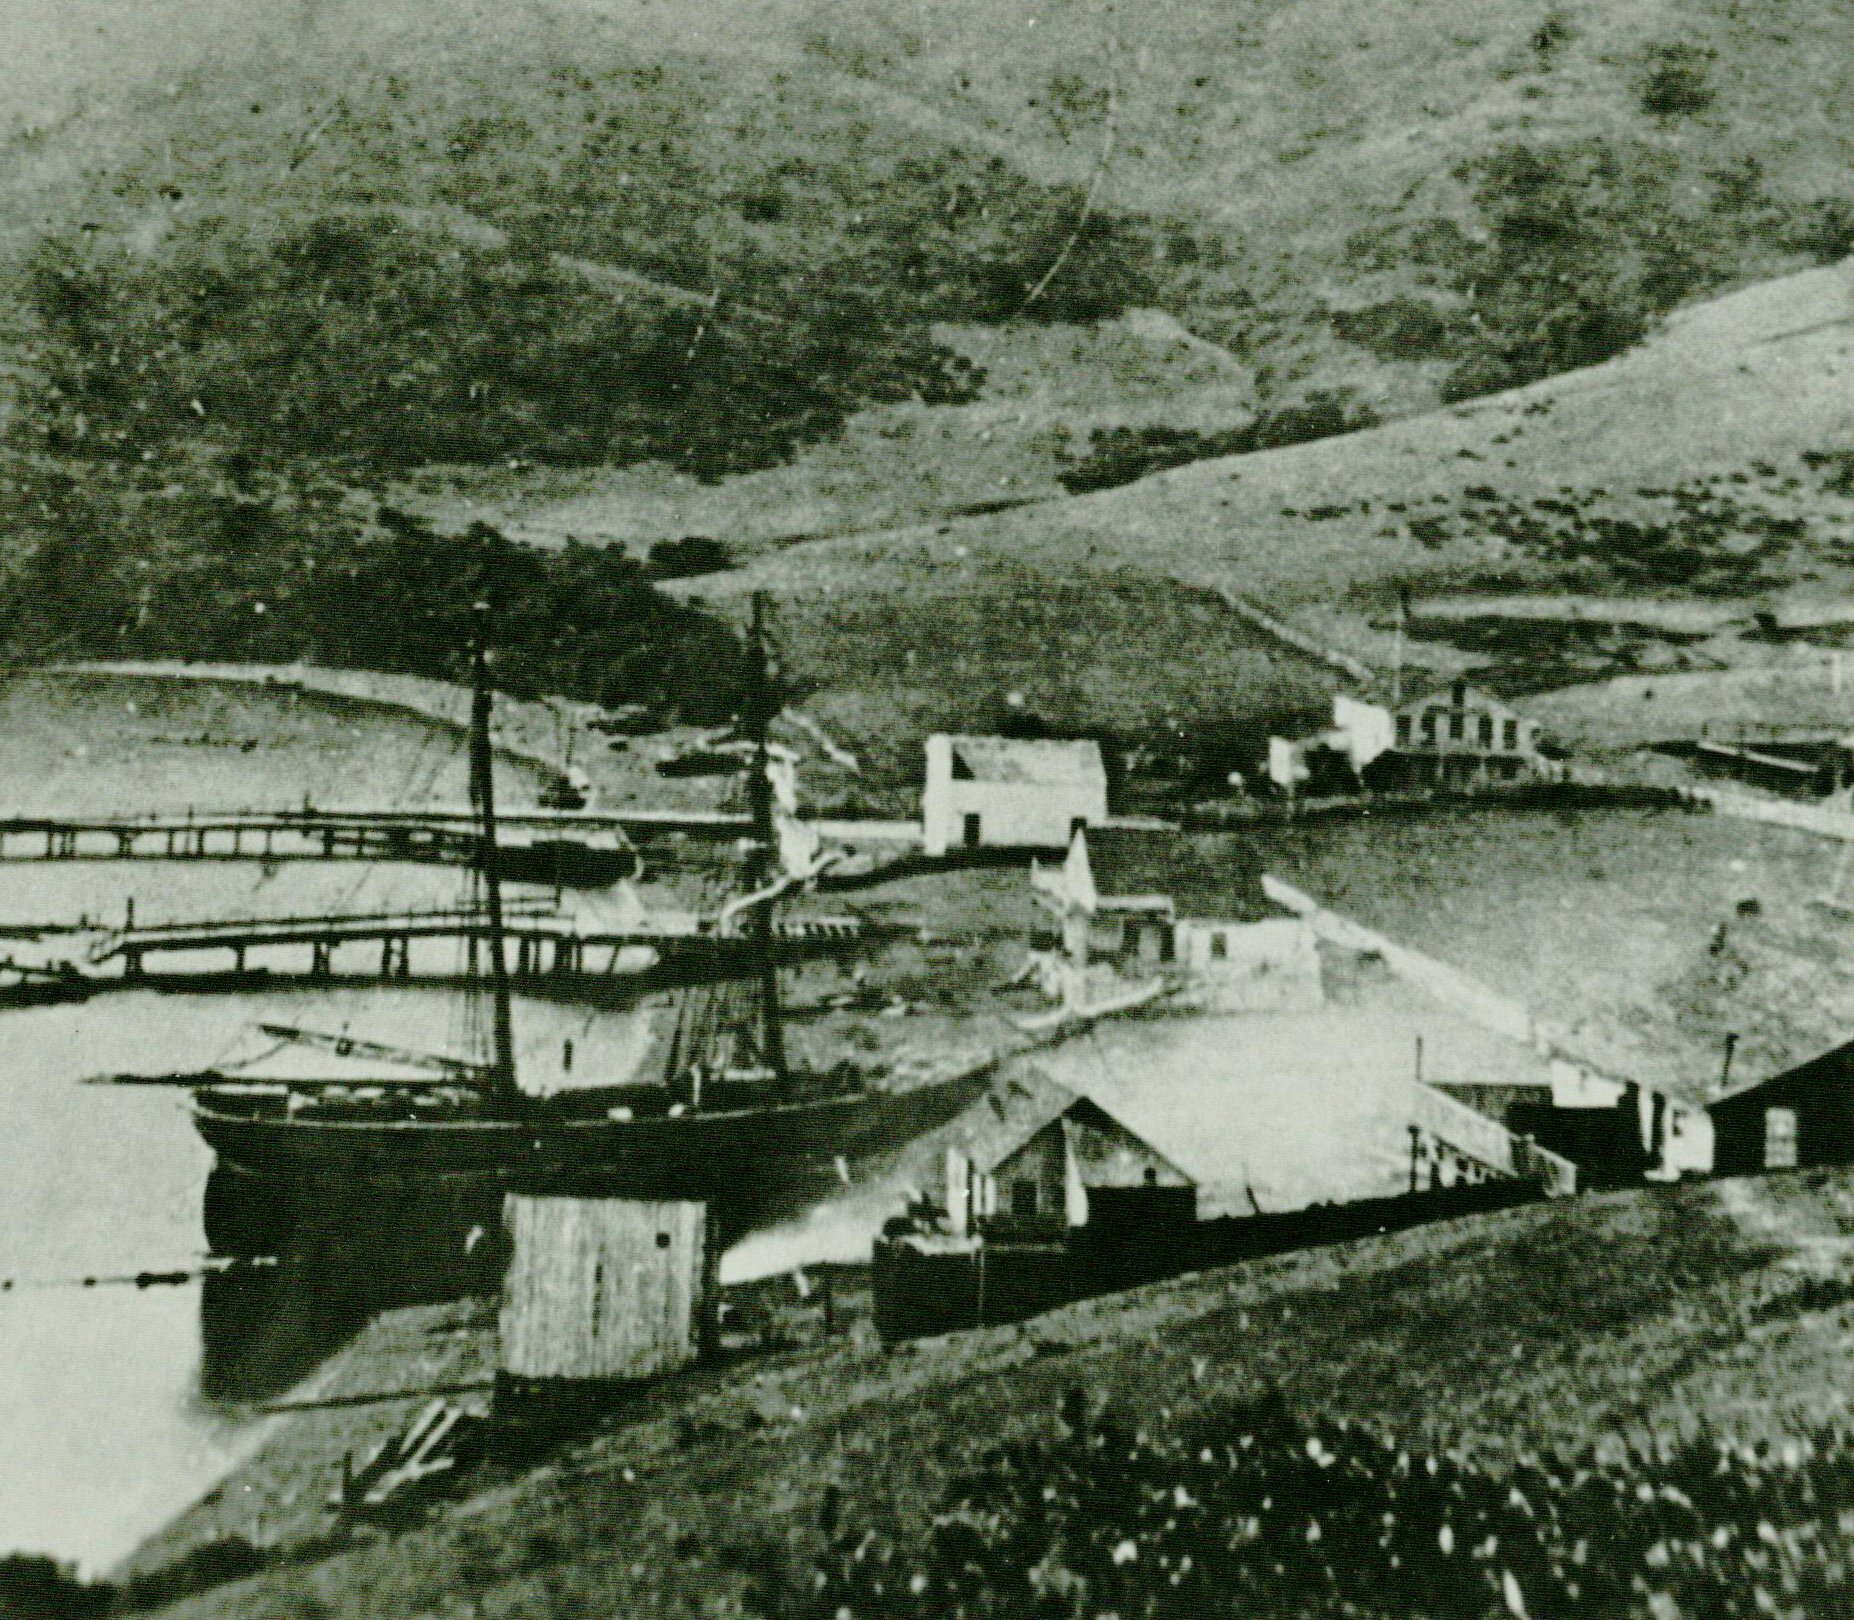 The earliest known photograph of Sausalito, c. 1852, shows Charles Botts's metropolis at its zenith, with perhaps thirty inhabitants. The center of the little cluster of buildings is located where Second and Main are today.   Photo courtesy of Sausalito Historical Society.